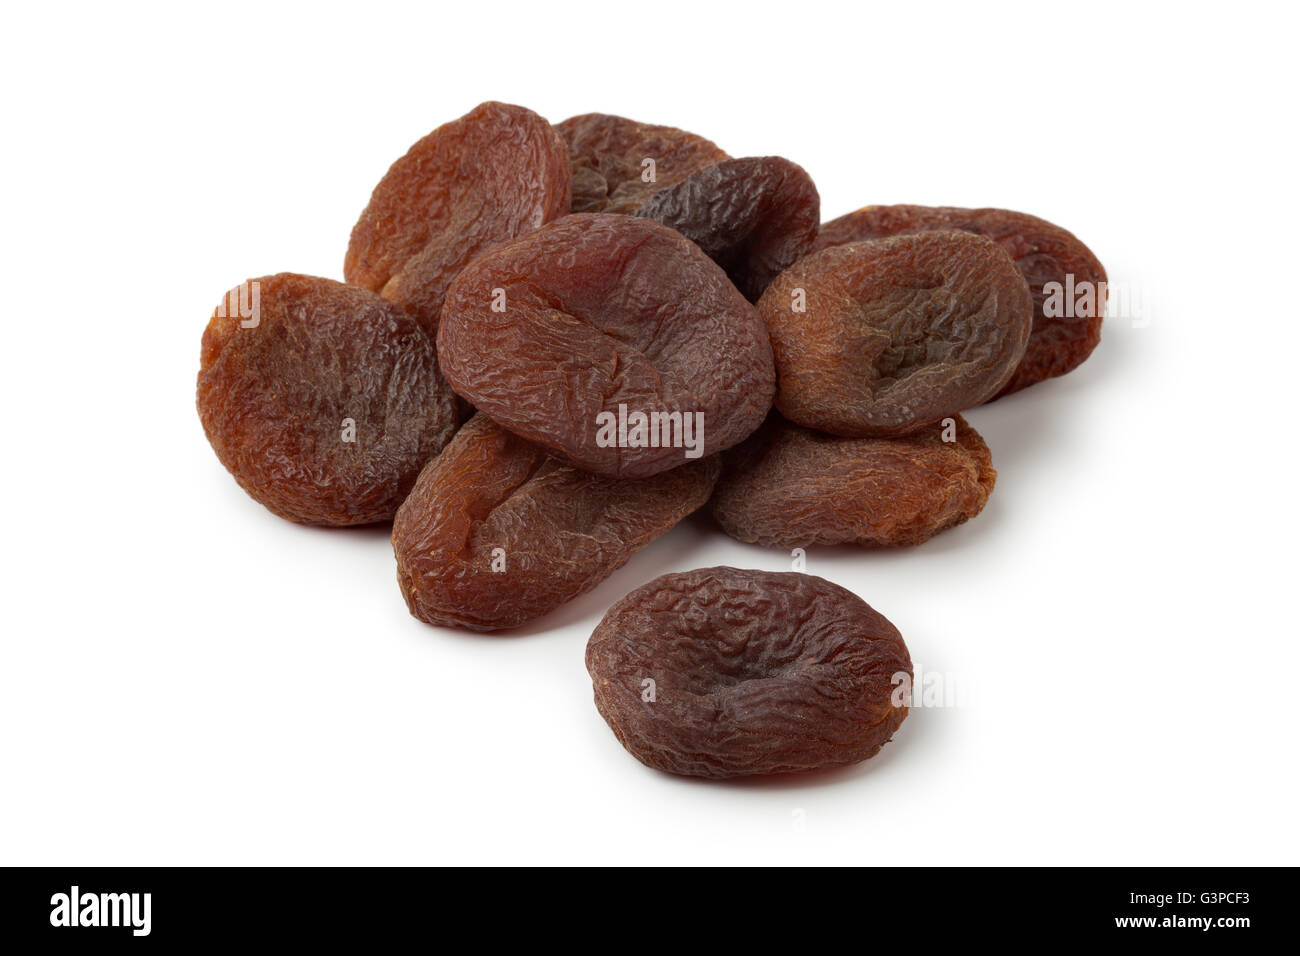 Heap of healthy nutritious sun dried apricot fruit on white background - Stock Image